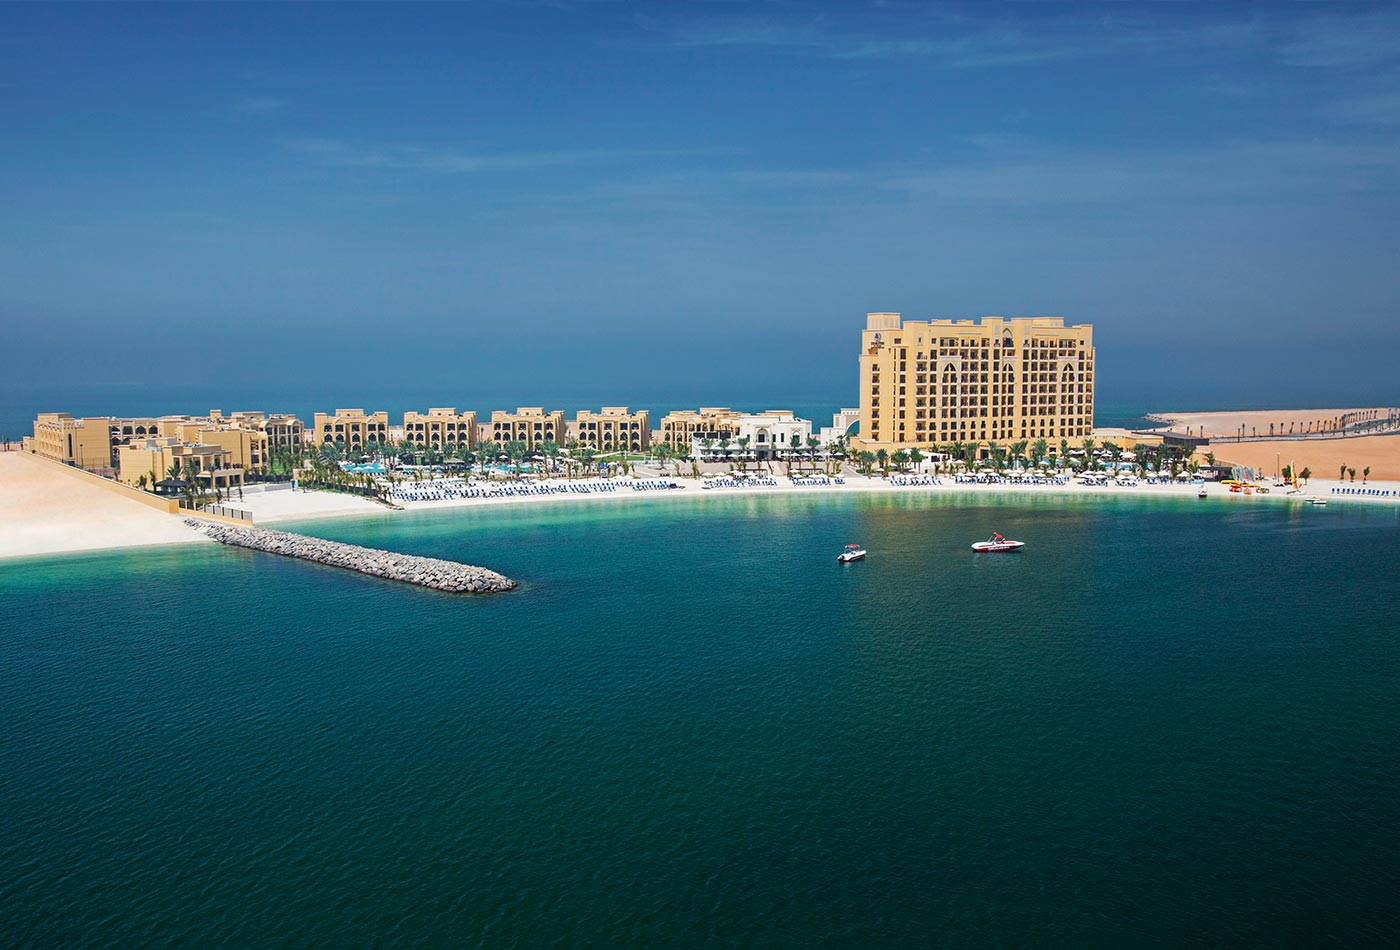 DoubleTree by Hilton Hotel and Resort, Marjan Island, UAE